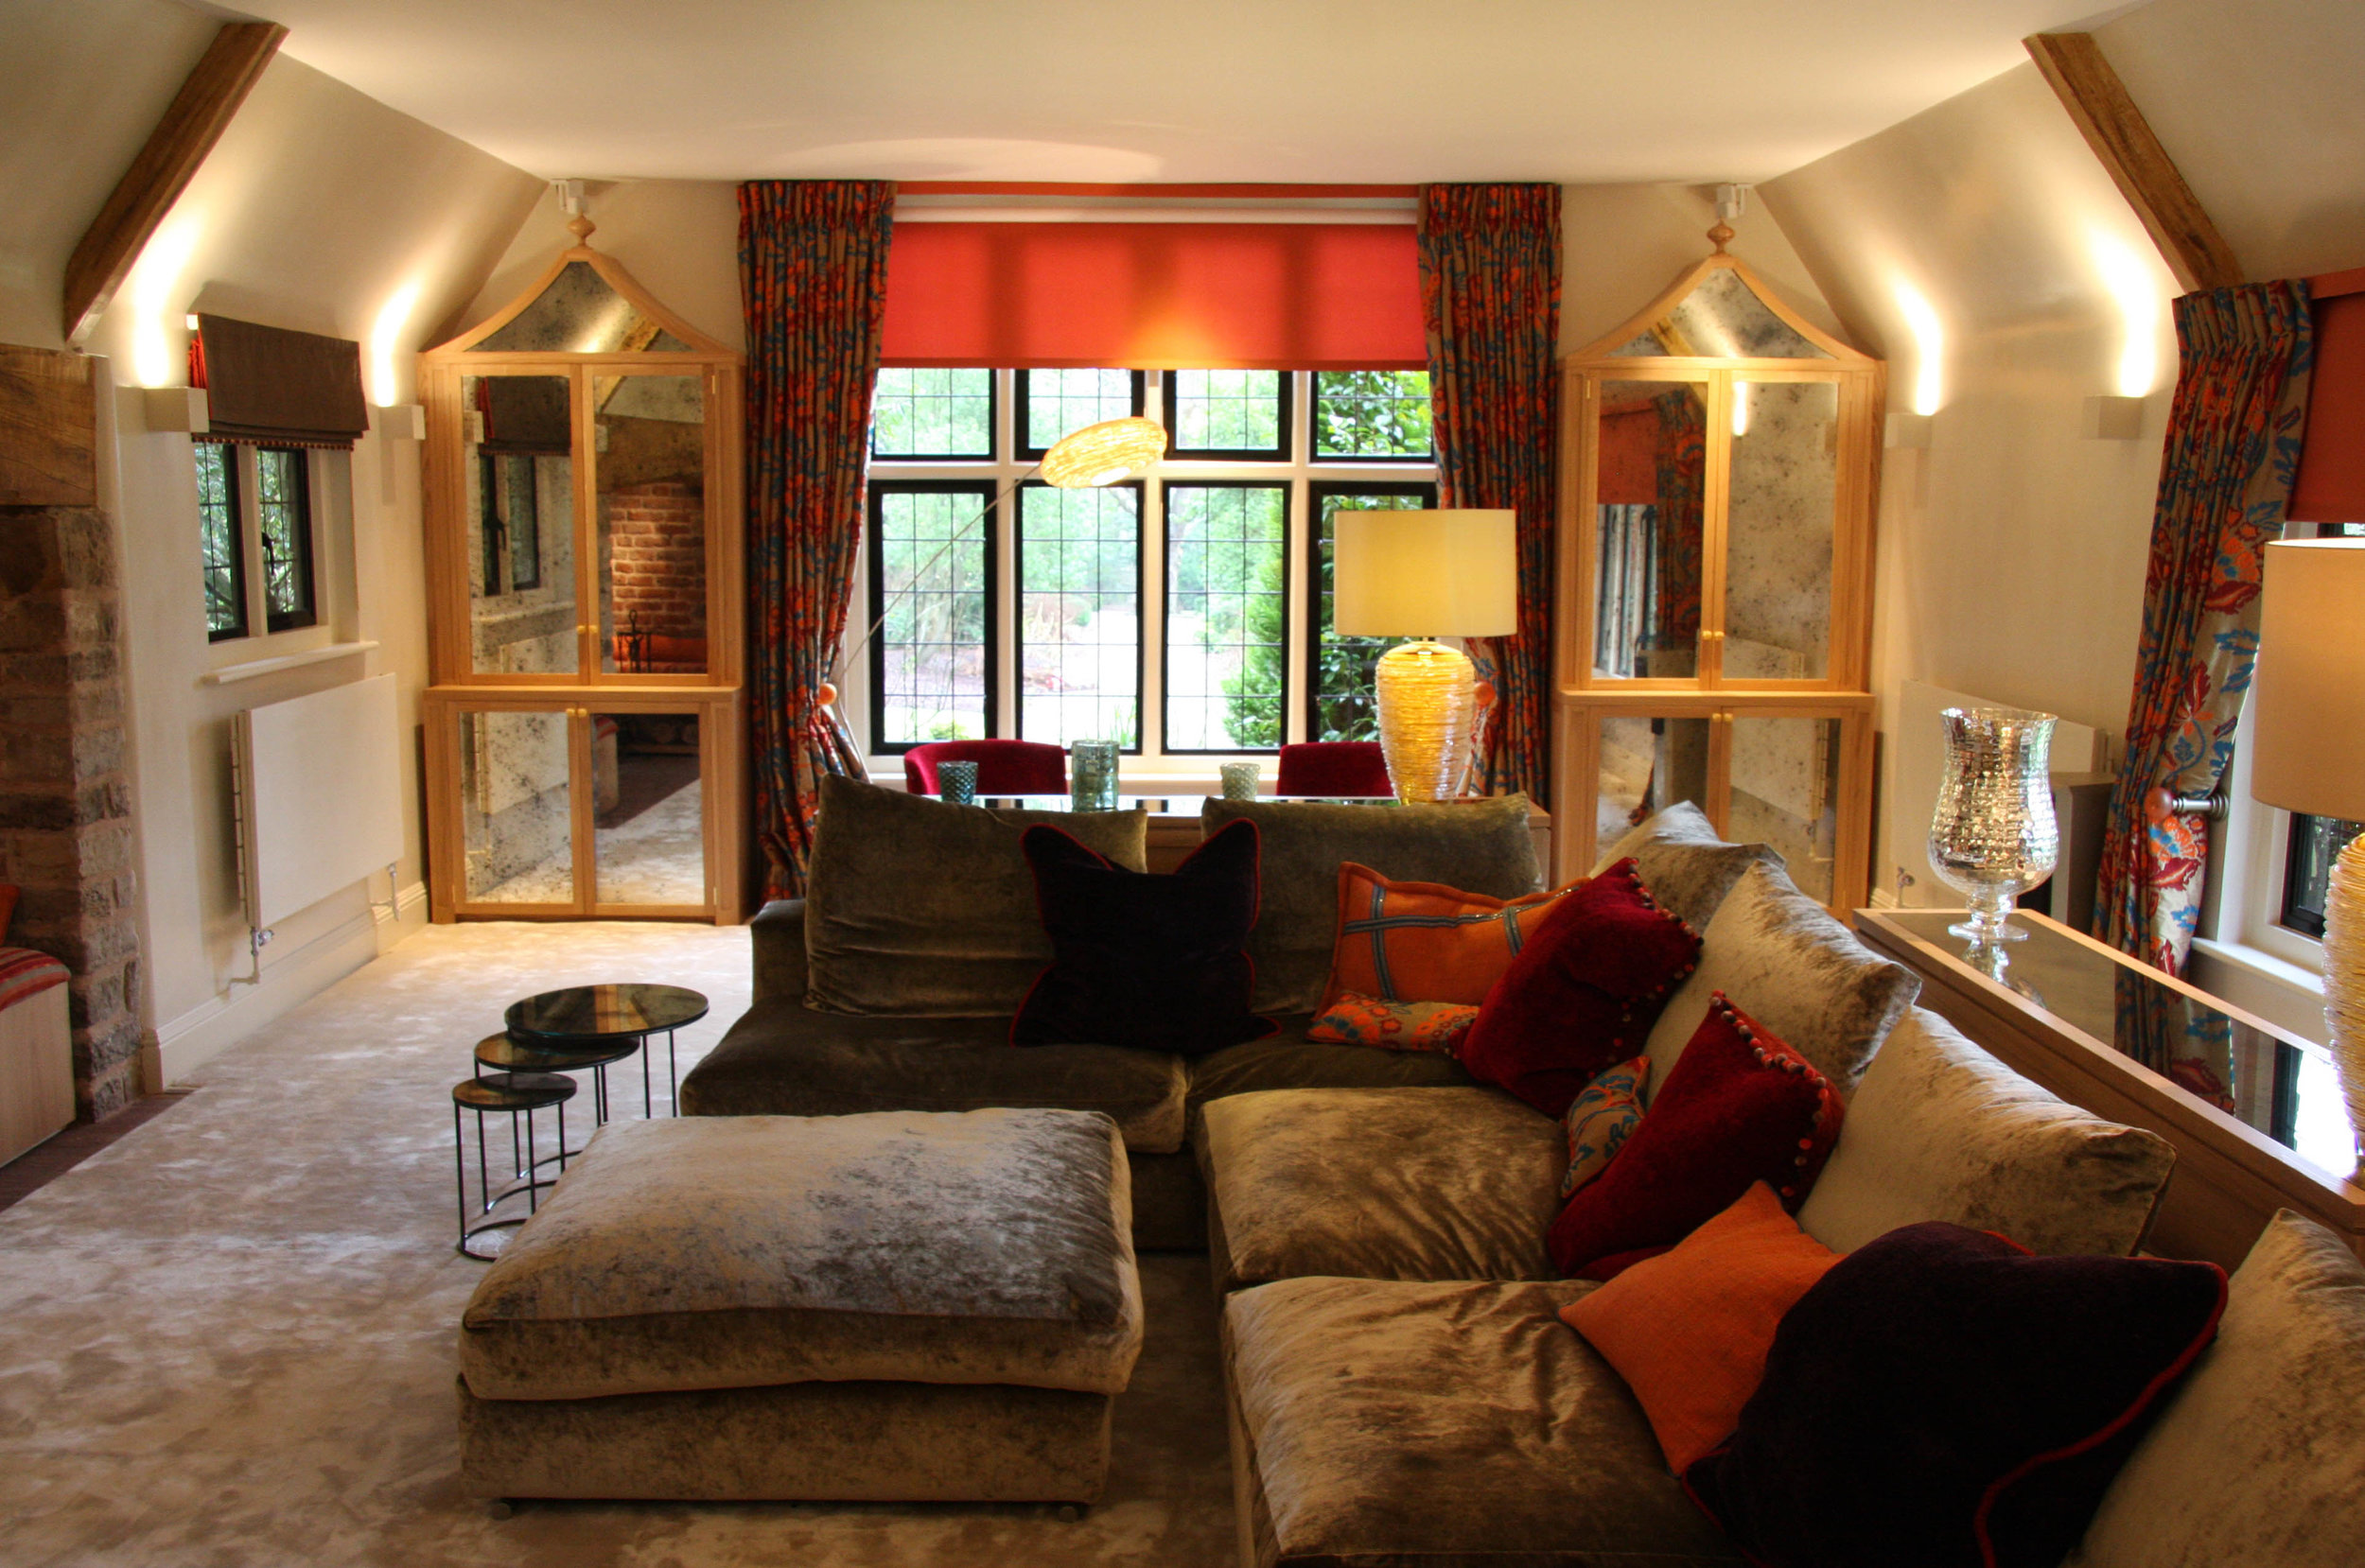 Sussex Country house interior design.jpg